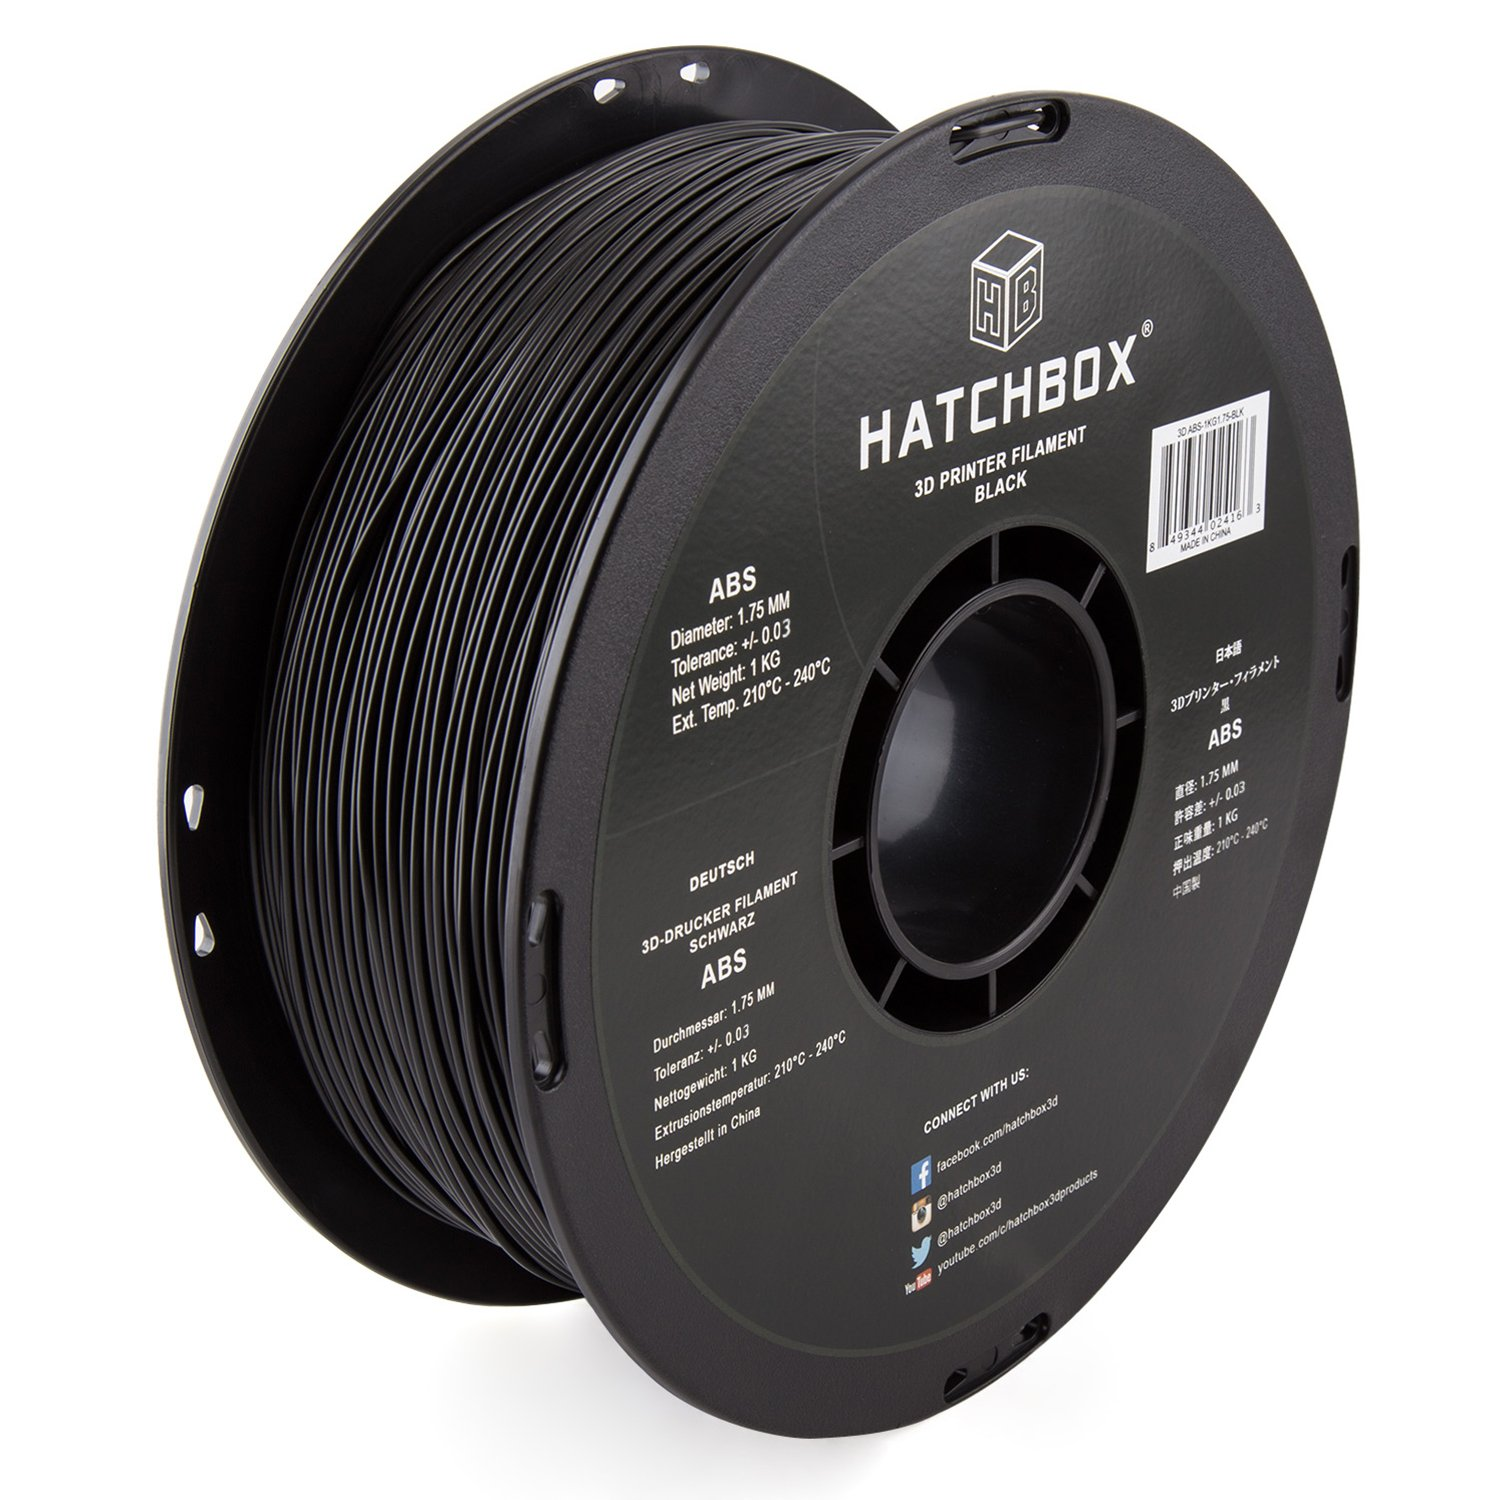 HATCHBOX 1.75mm Black ABS 3D Printer Filament - 1kg Spool ...